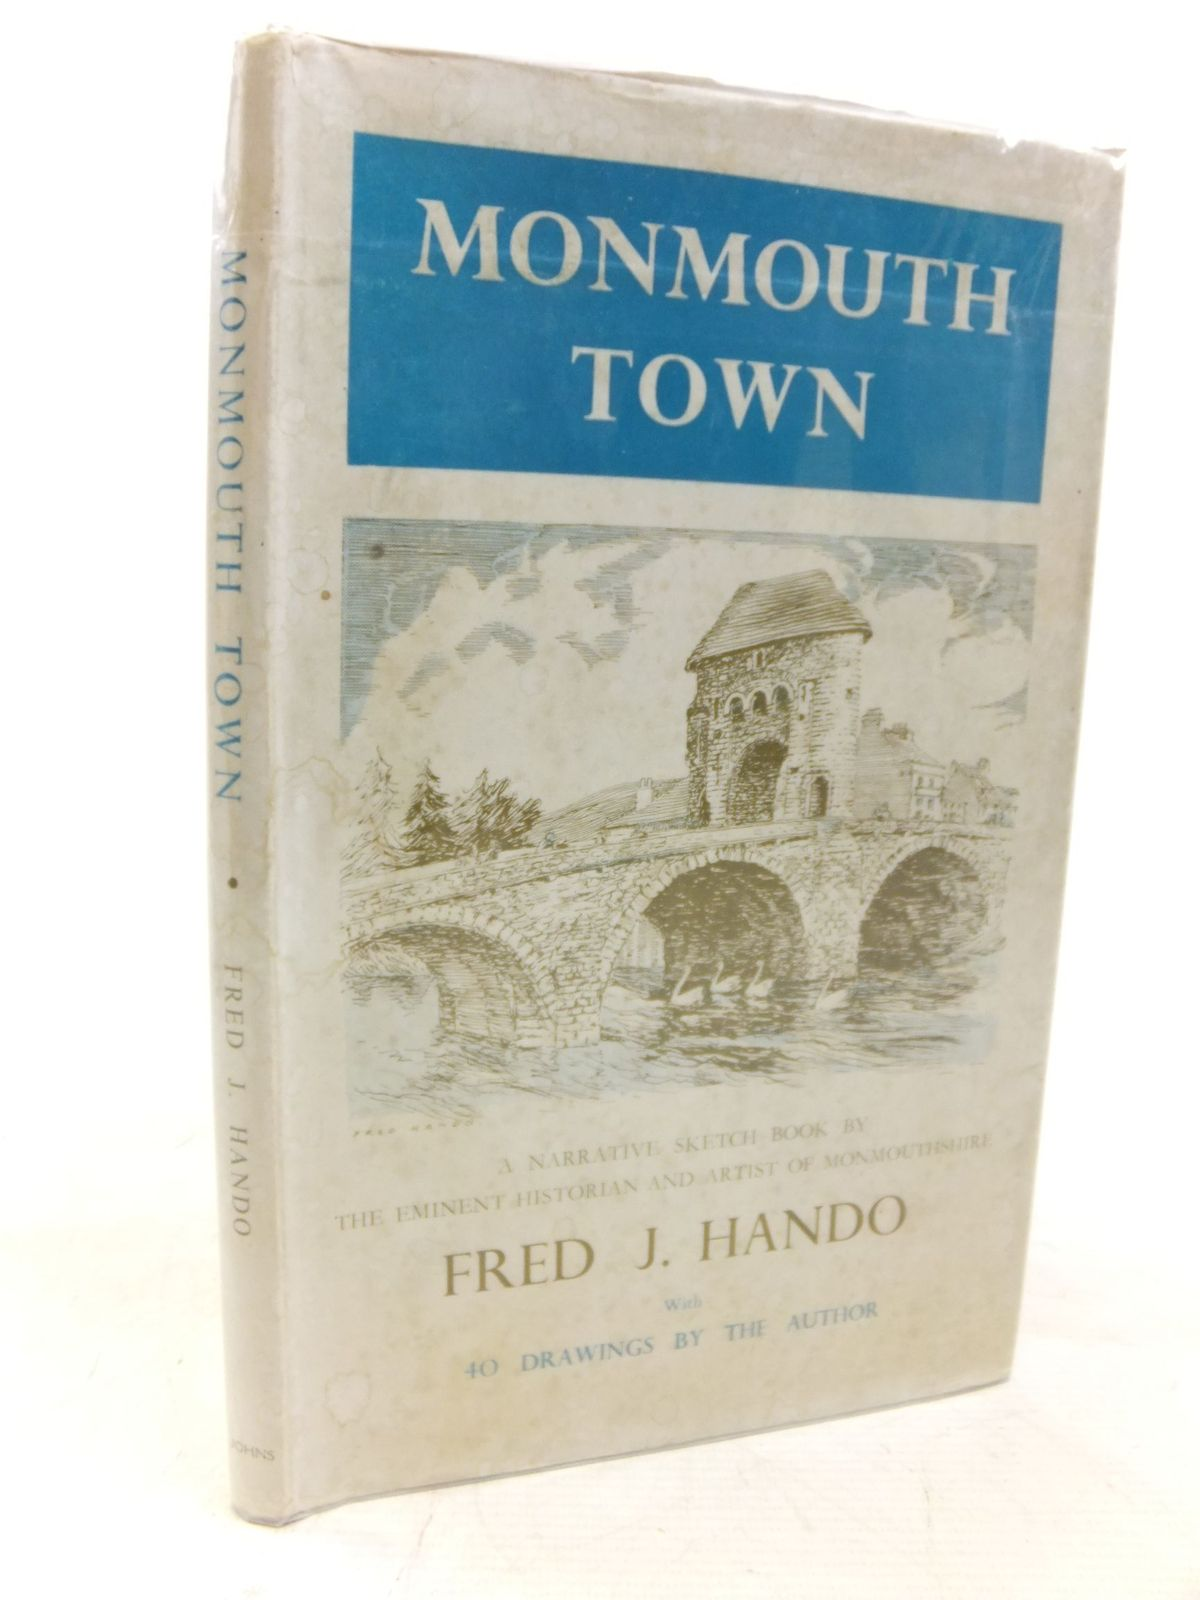 Photo of MONMOUTH TOWN SKETCH BOOK written by Hando, Fred J. illustrated by Hando, Fred J. published by R.H. Johns Limited (STOCK CODE: 1712727)  for sale by Stella & Rose's Books